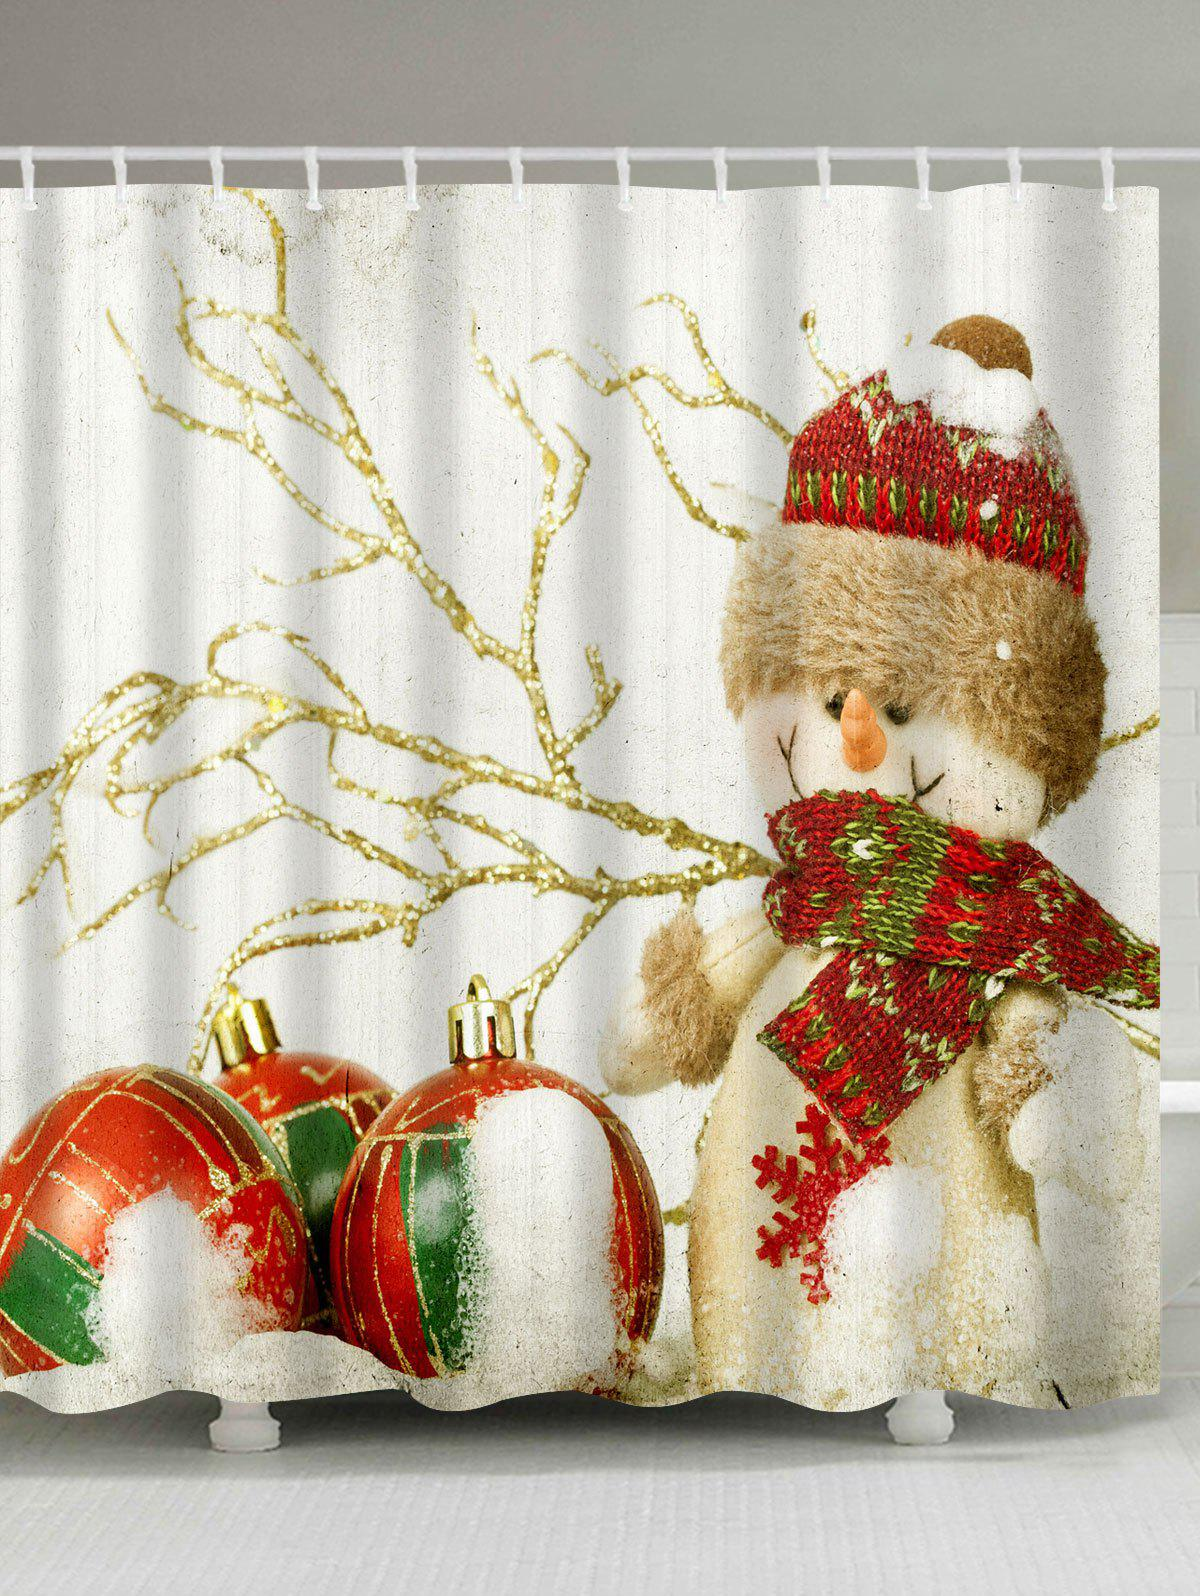 Christmas Snowman Print Fabric Waterproof Bathroom Shower CurtainHOME<br><br>Size: W71 INCH * L79 INCH; Color: COLORMIX; Products Type: Shower Curtains; Materials: Polyester; Pattern: Face,Print; Style: Festival; Number of Hook Holes: W59 inch*L71 inch: 10; W71 inch*L71 inch: 12; W71 inch*L79 inch: 12; Package Contents: 1 x Shower Curtain 1 x Hooks (Set);